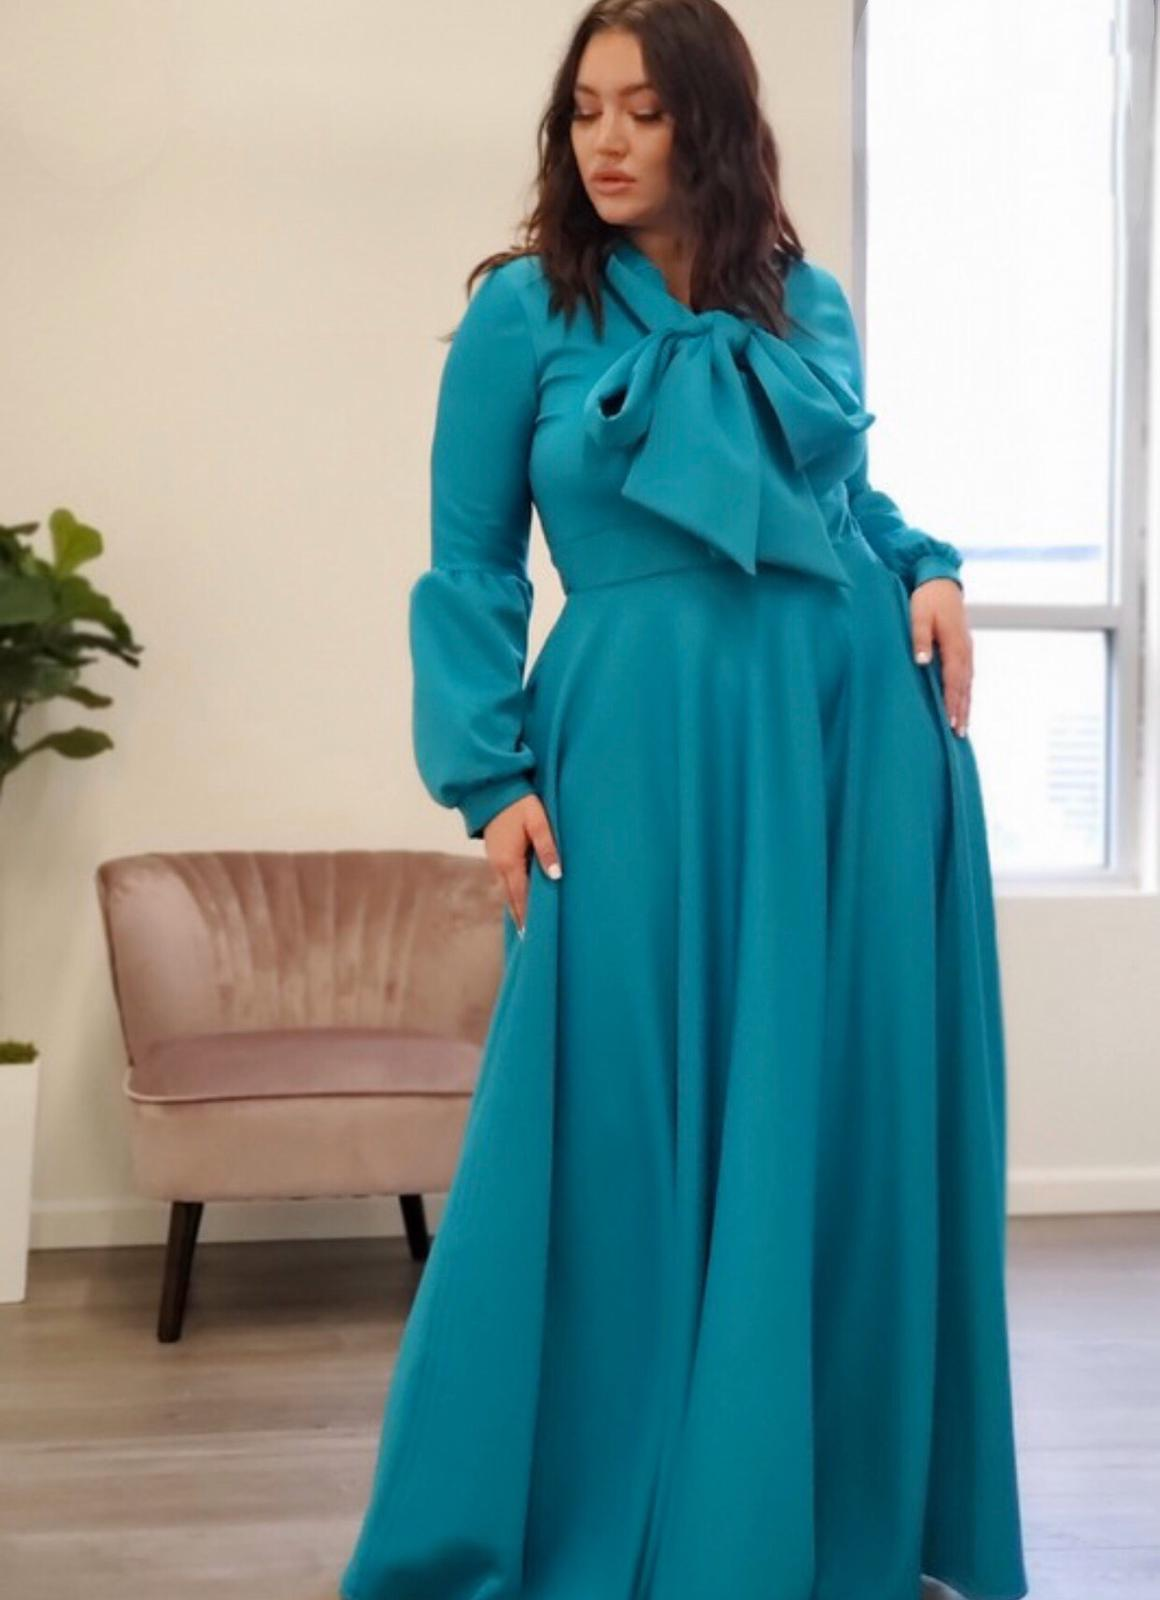 Teal Zainab Flared Maxi Dress With Necktie - Large Si For Fall Winter Spring Summer